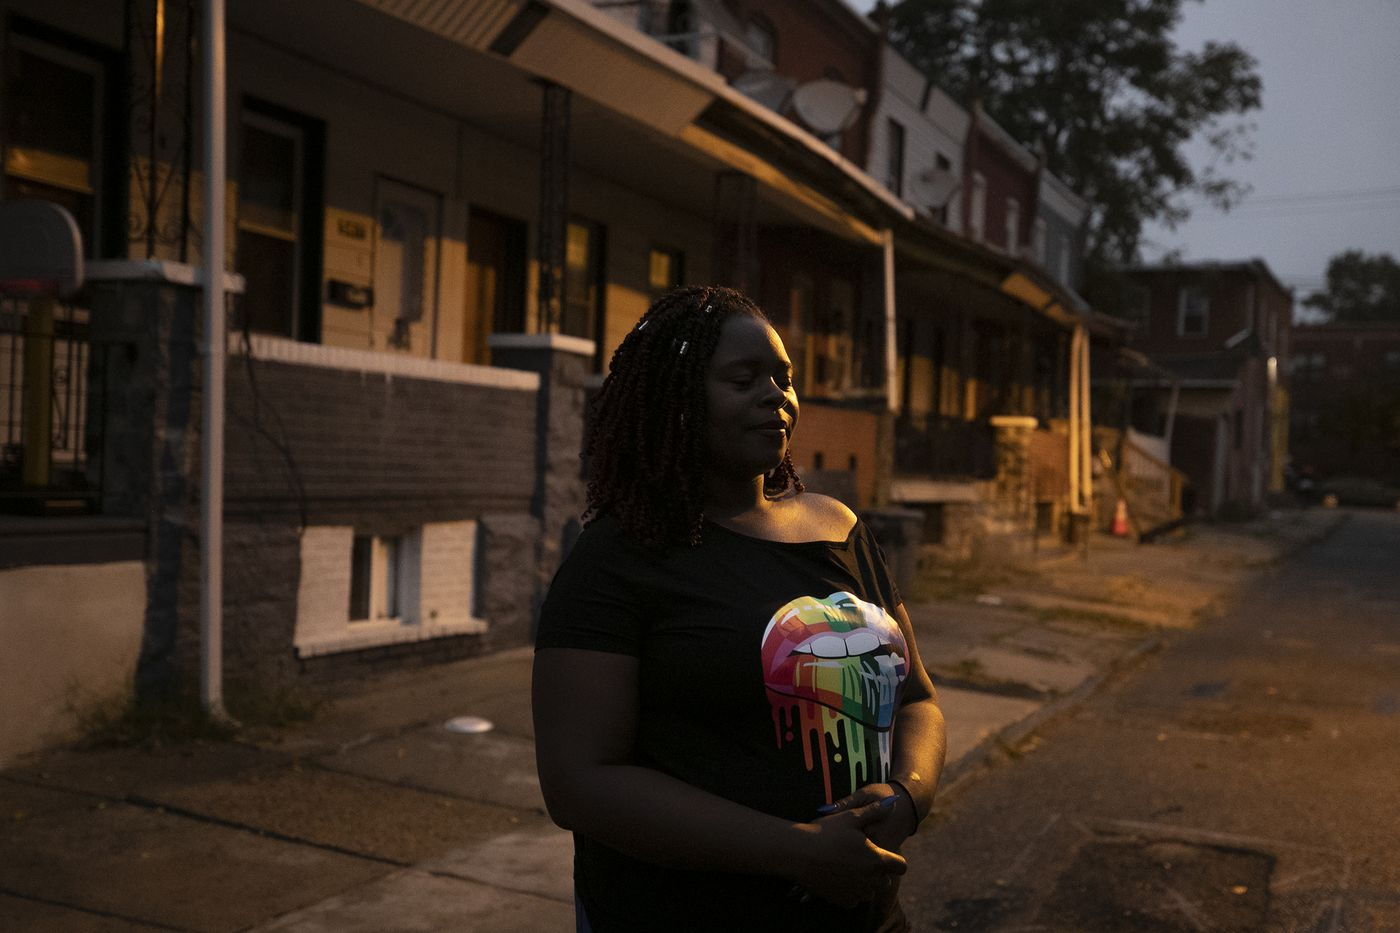 Lateefah Knight in the Parkside section of West Philadelphia. Knight was evicted from her home in 2018 and has struggled to find long-term housing since.